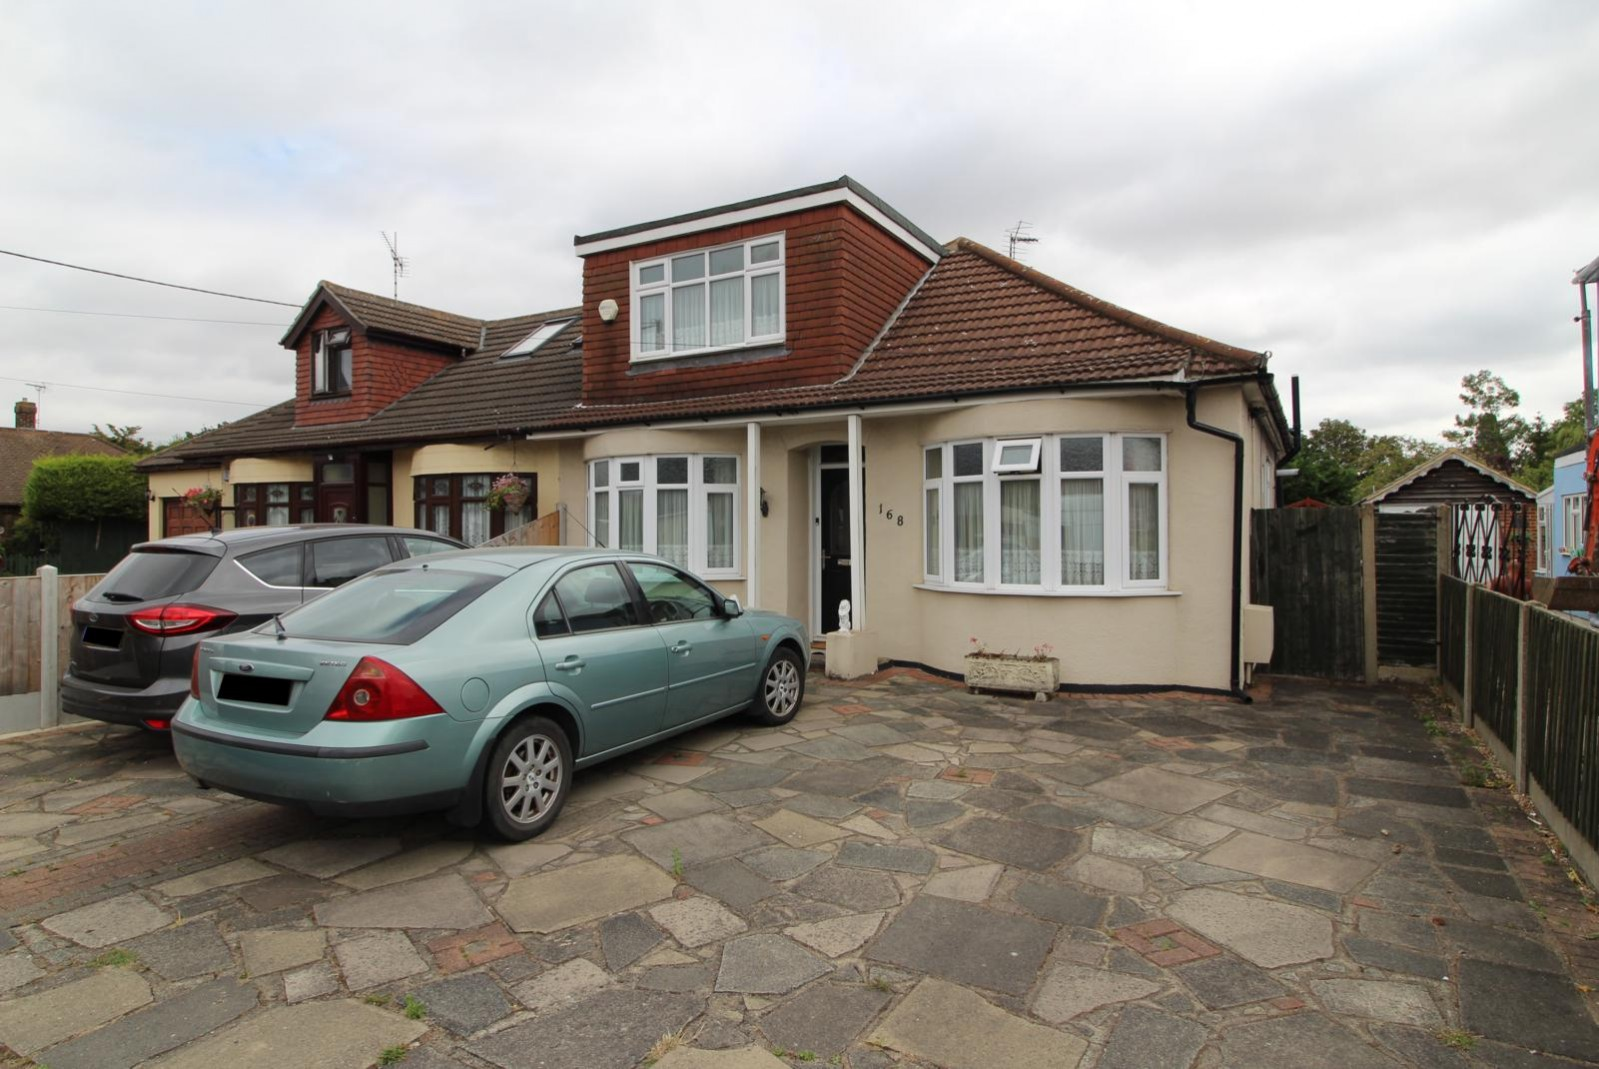 Thorndon Avenue, West Horndon, Brentwood, Essex, CM13